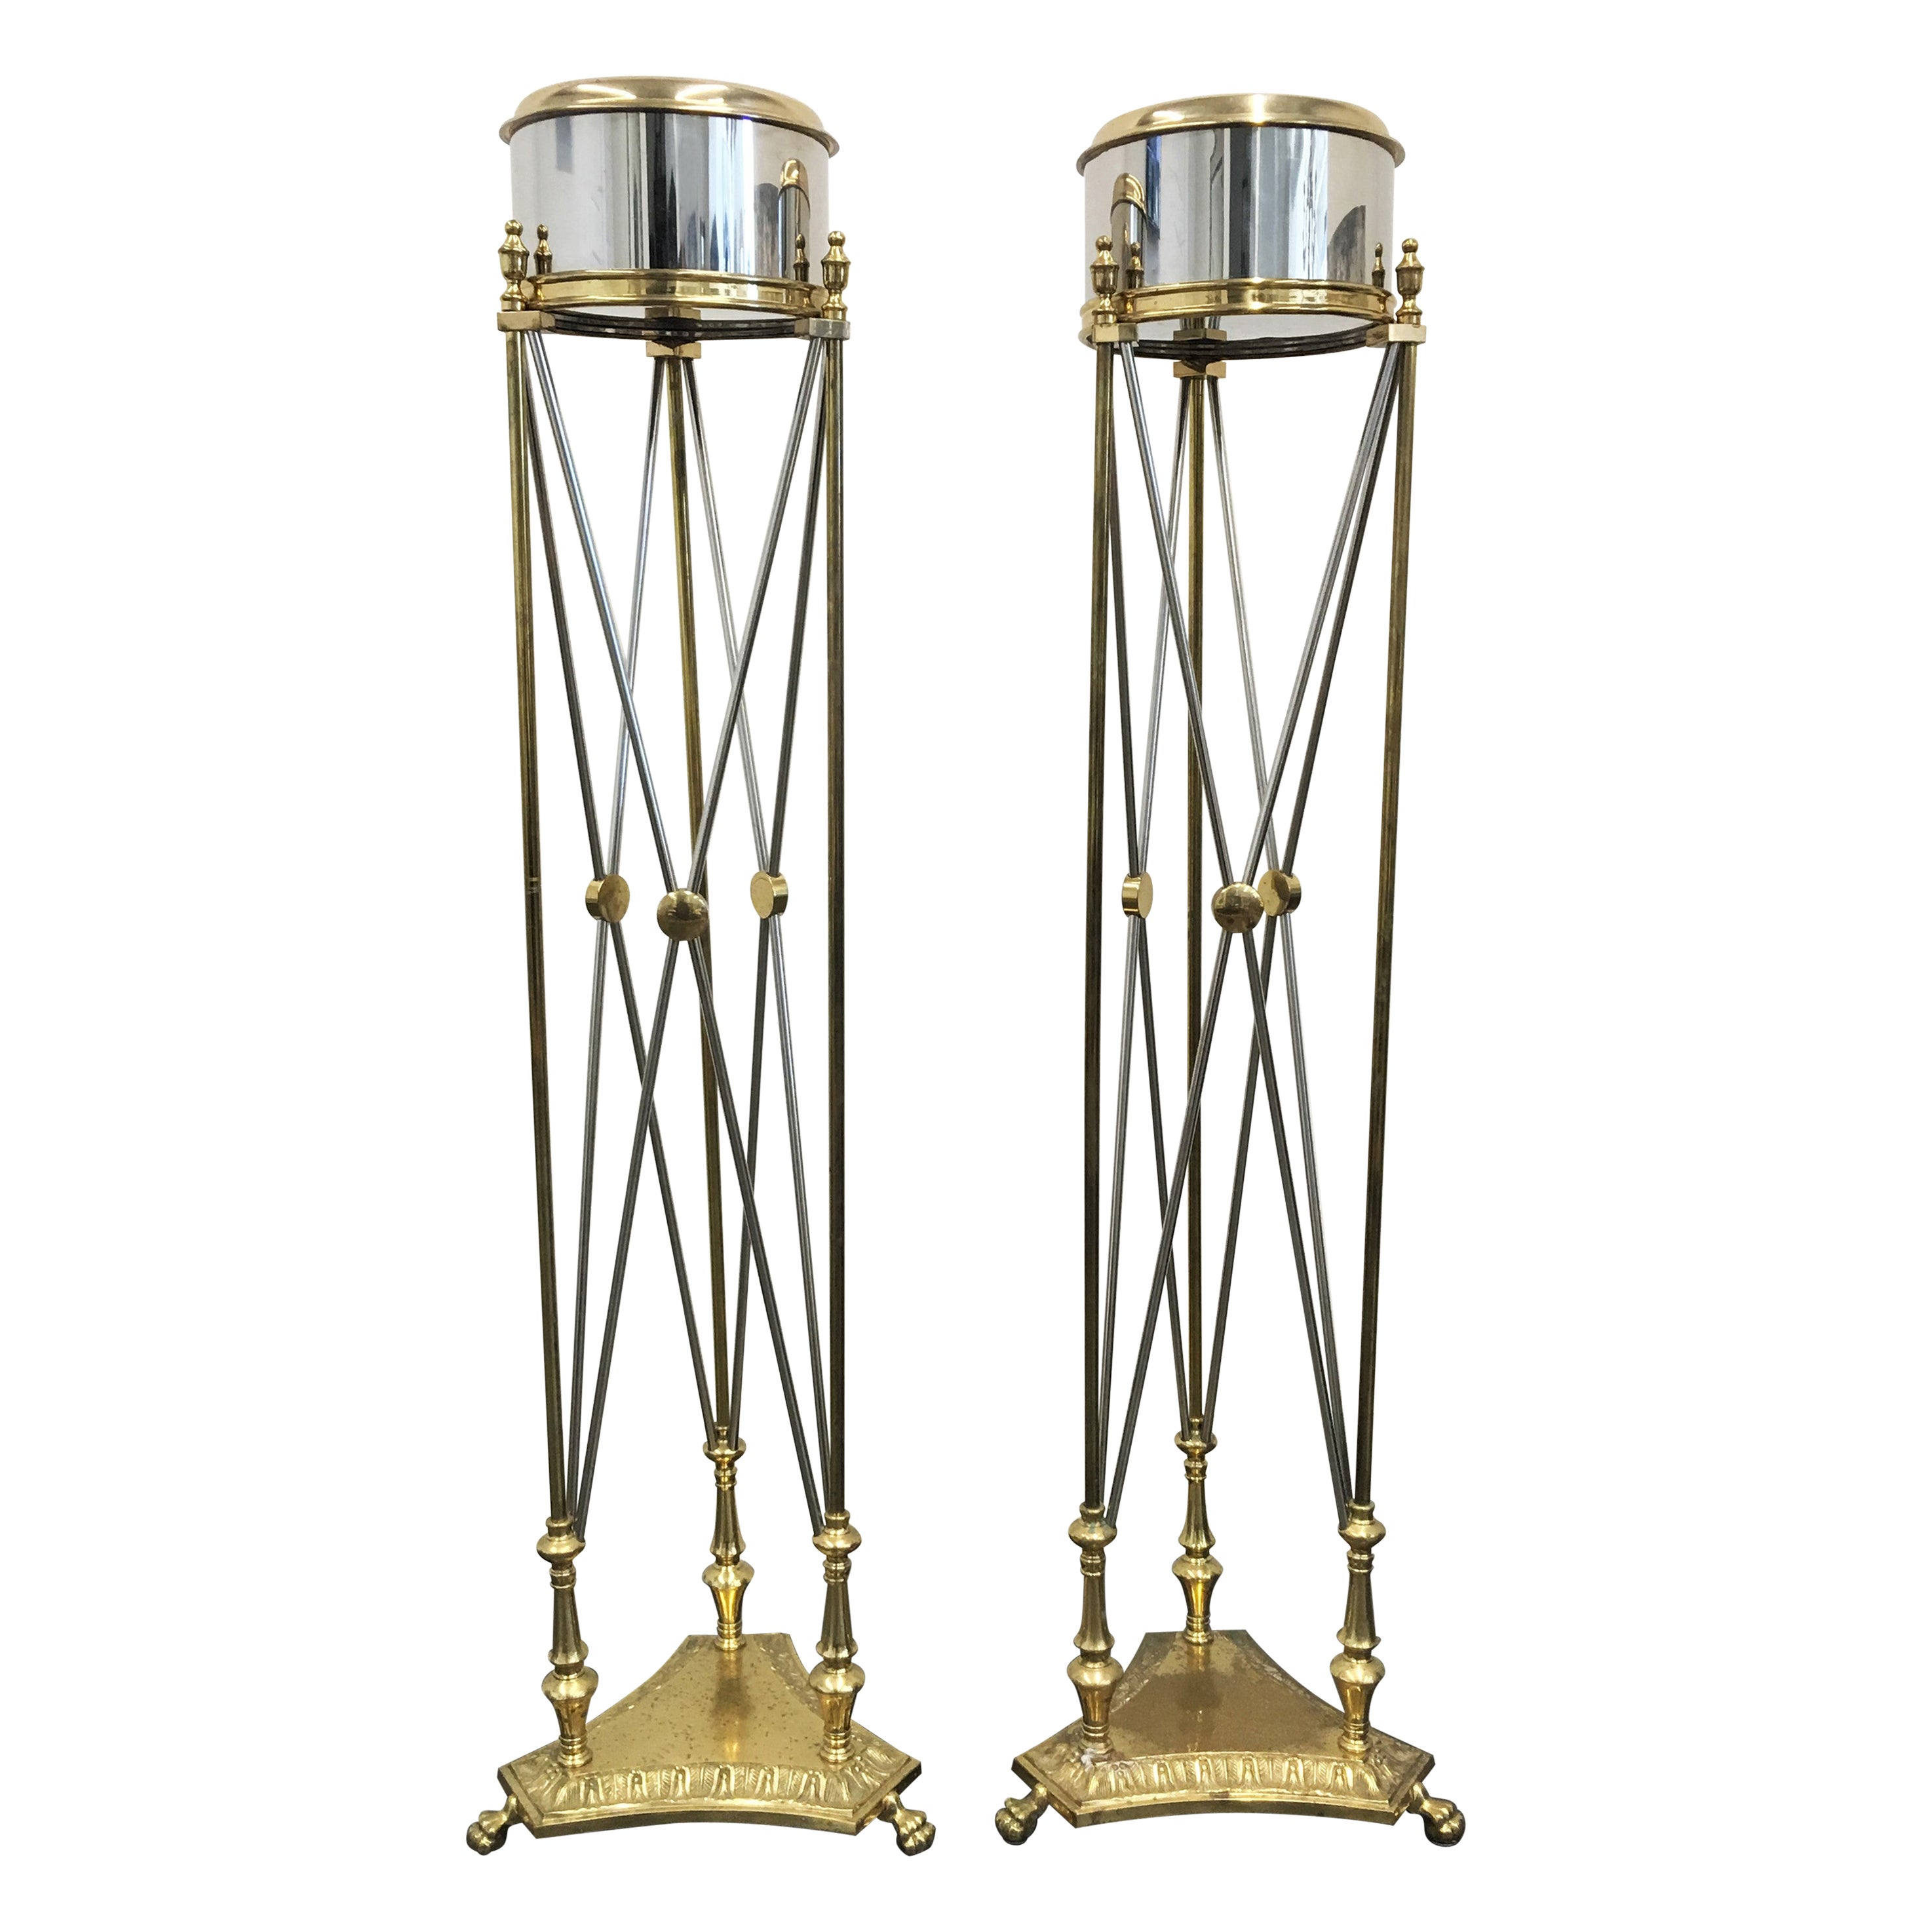 Pair of Maison Jansen Style Steel and Brass Jardinière / Planter Stands